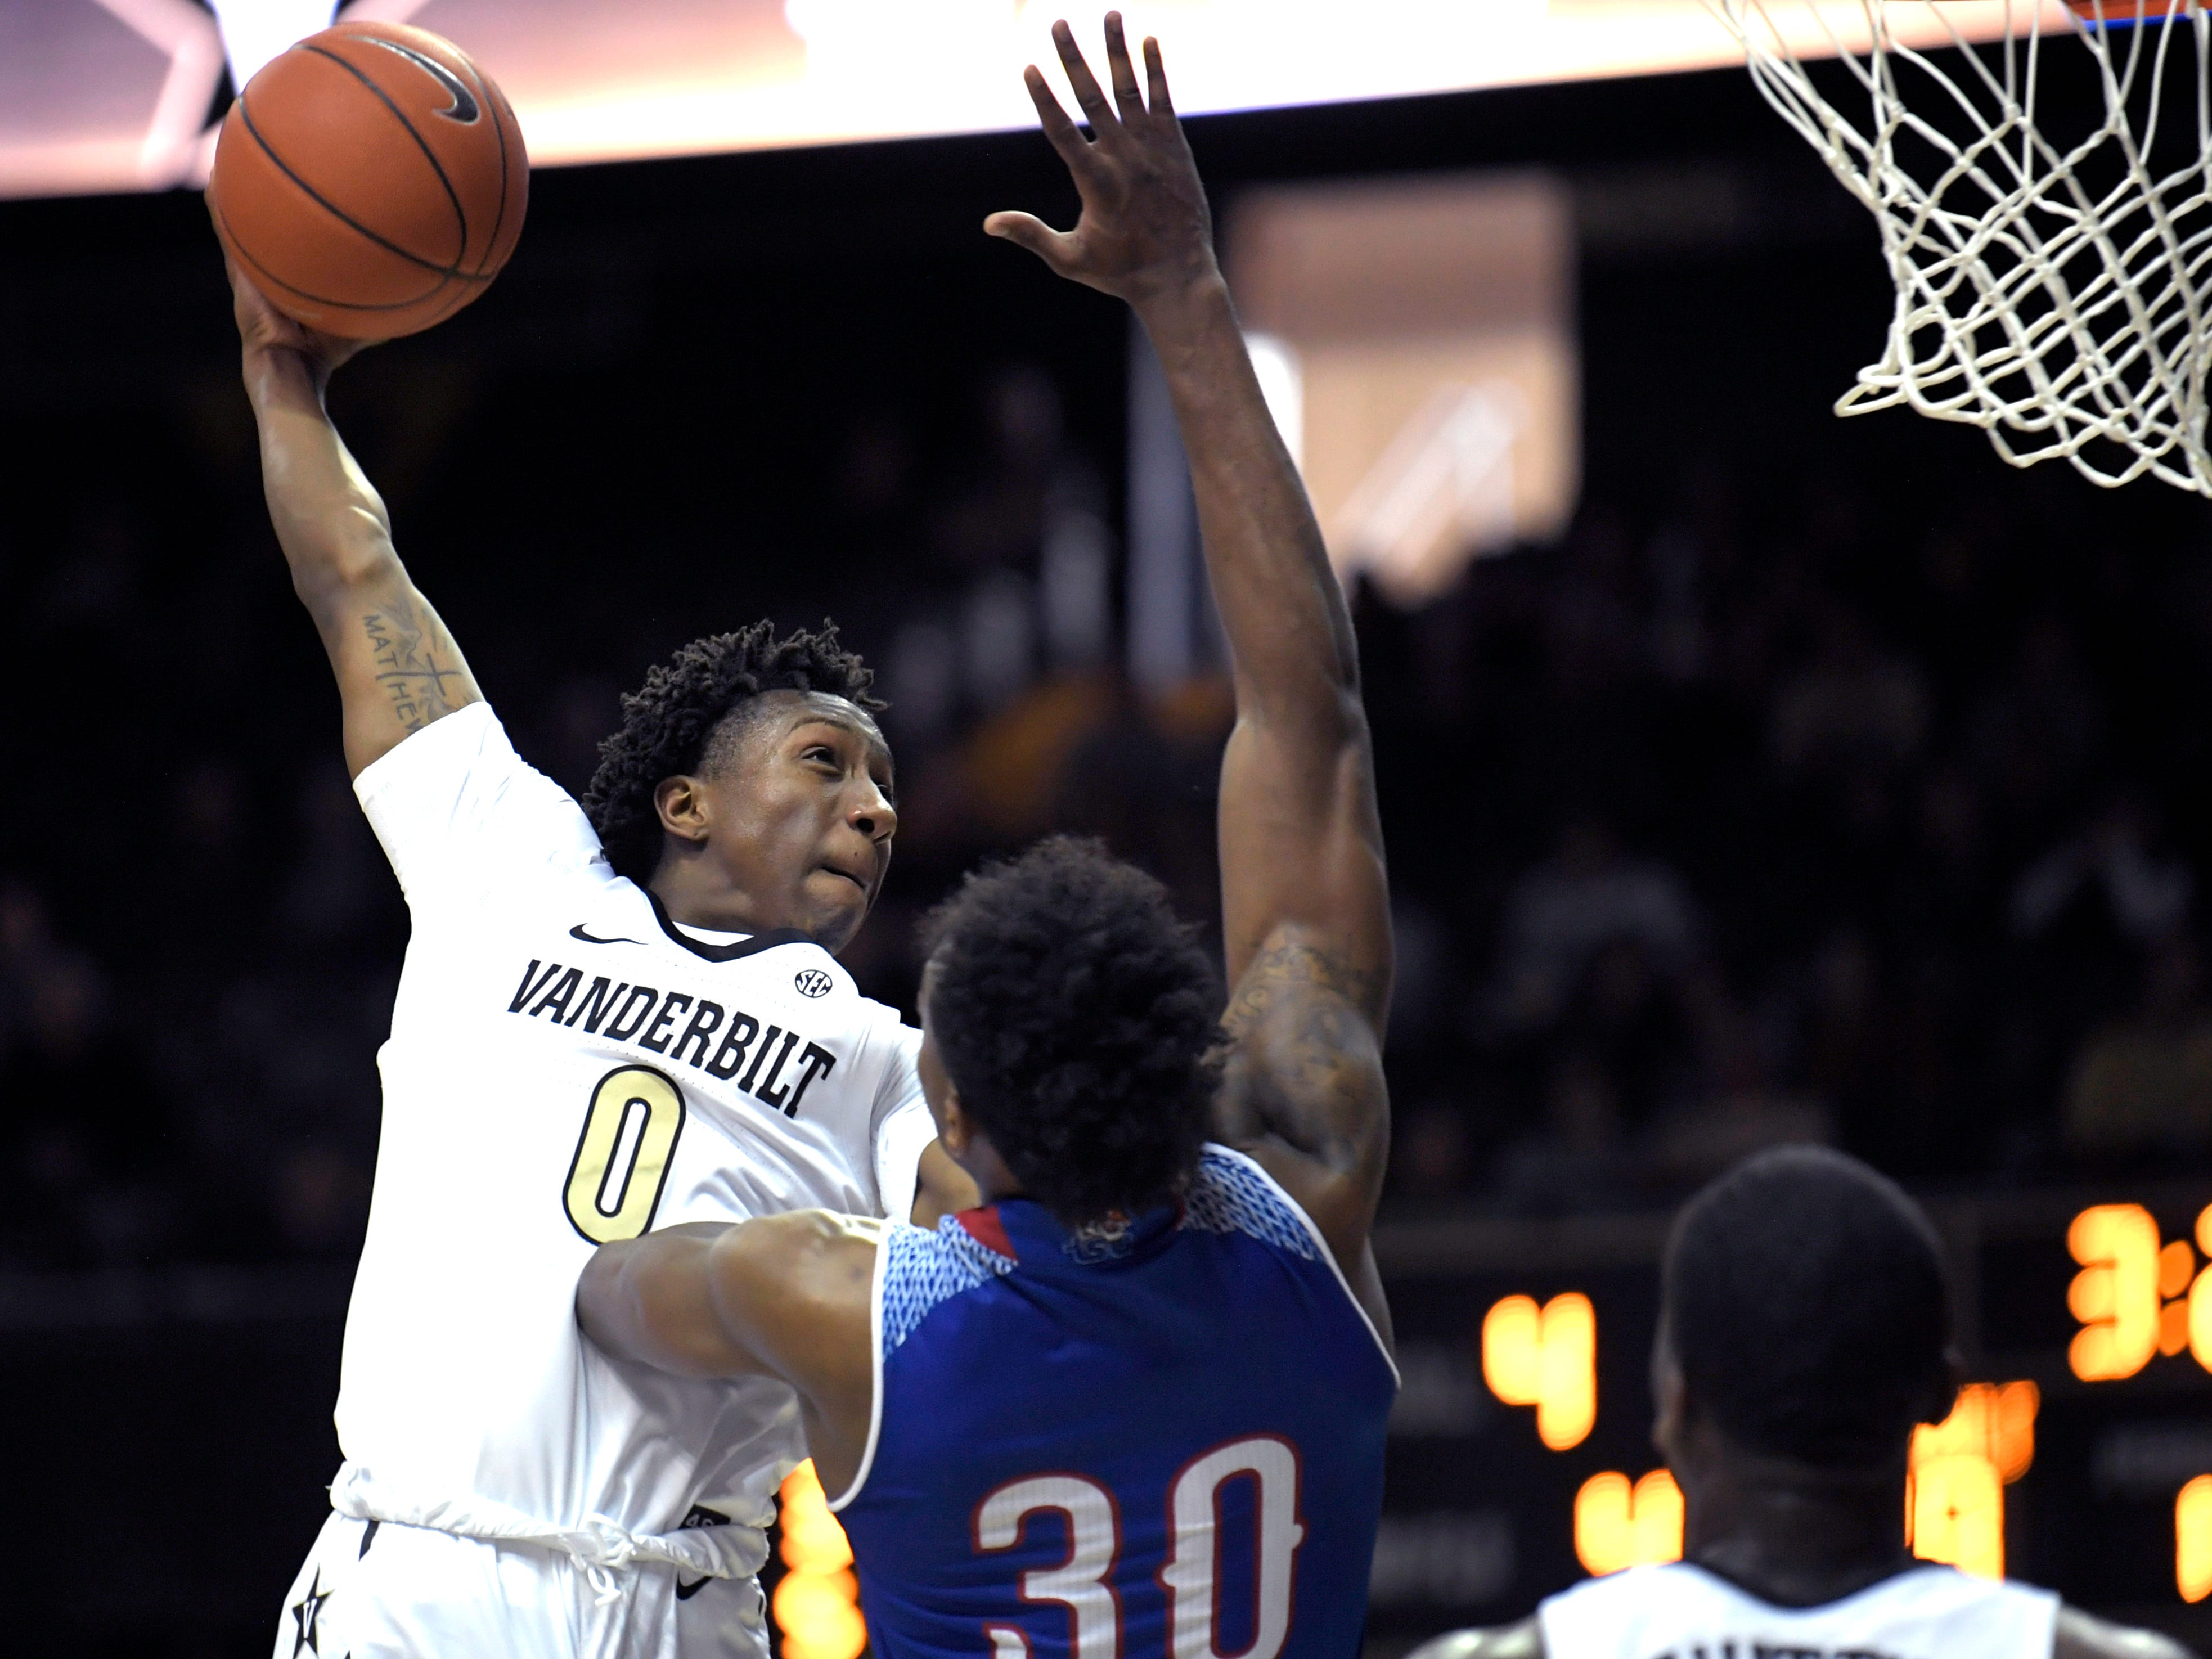 Vanderbilt guard Saben Lee (0) dunks the ball over Tennessee State forward Stokley Chaffee Jr. (30) during a at Memorial Gym in Nashville on Saturday, Dec. 29, 2018.